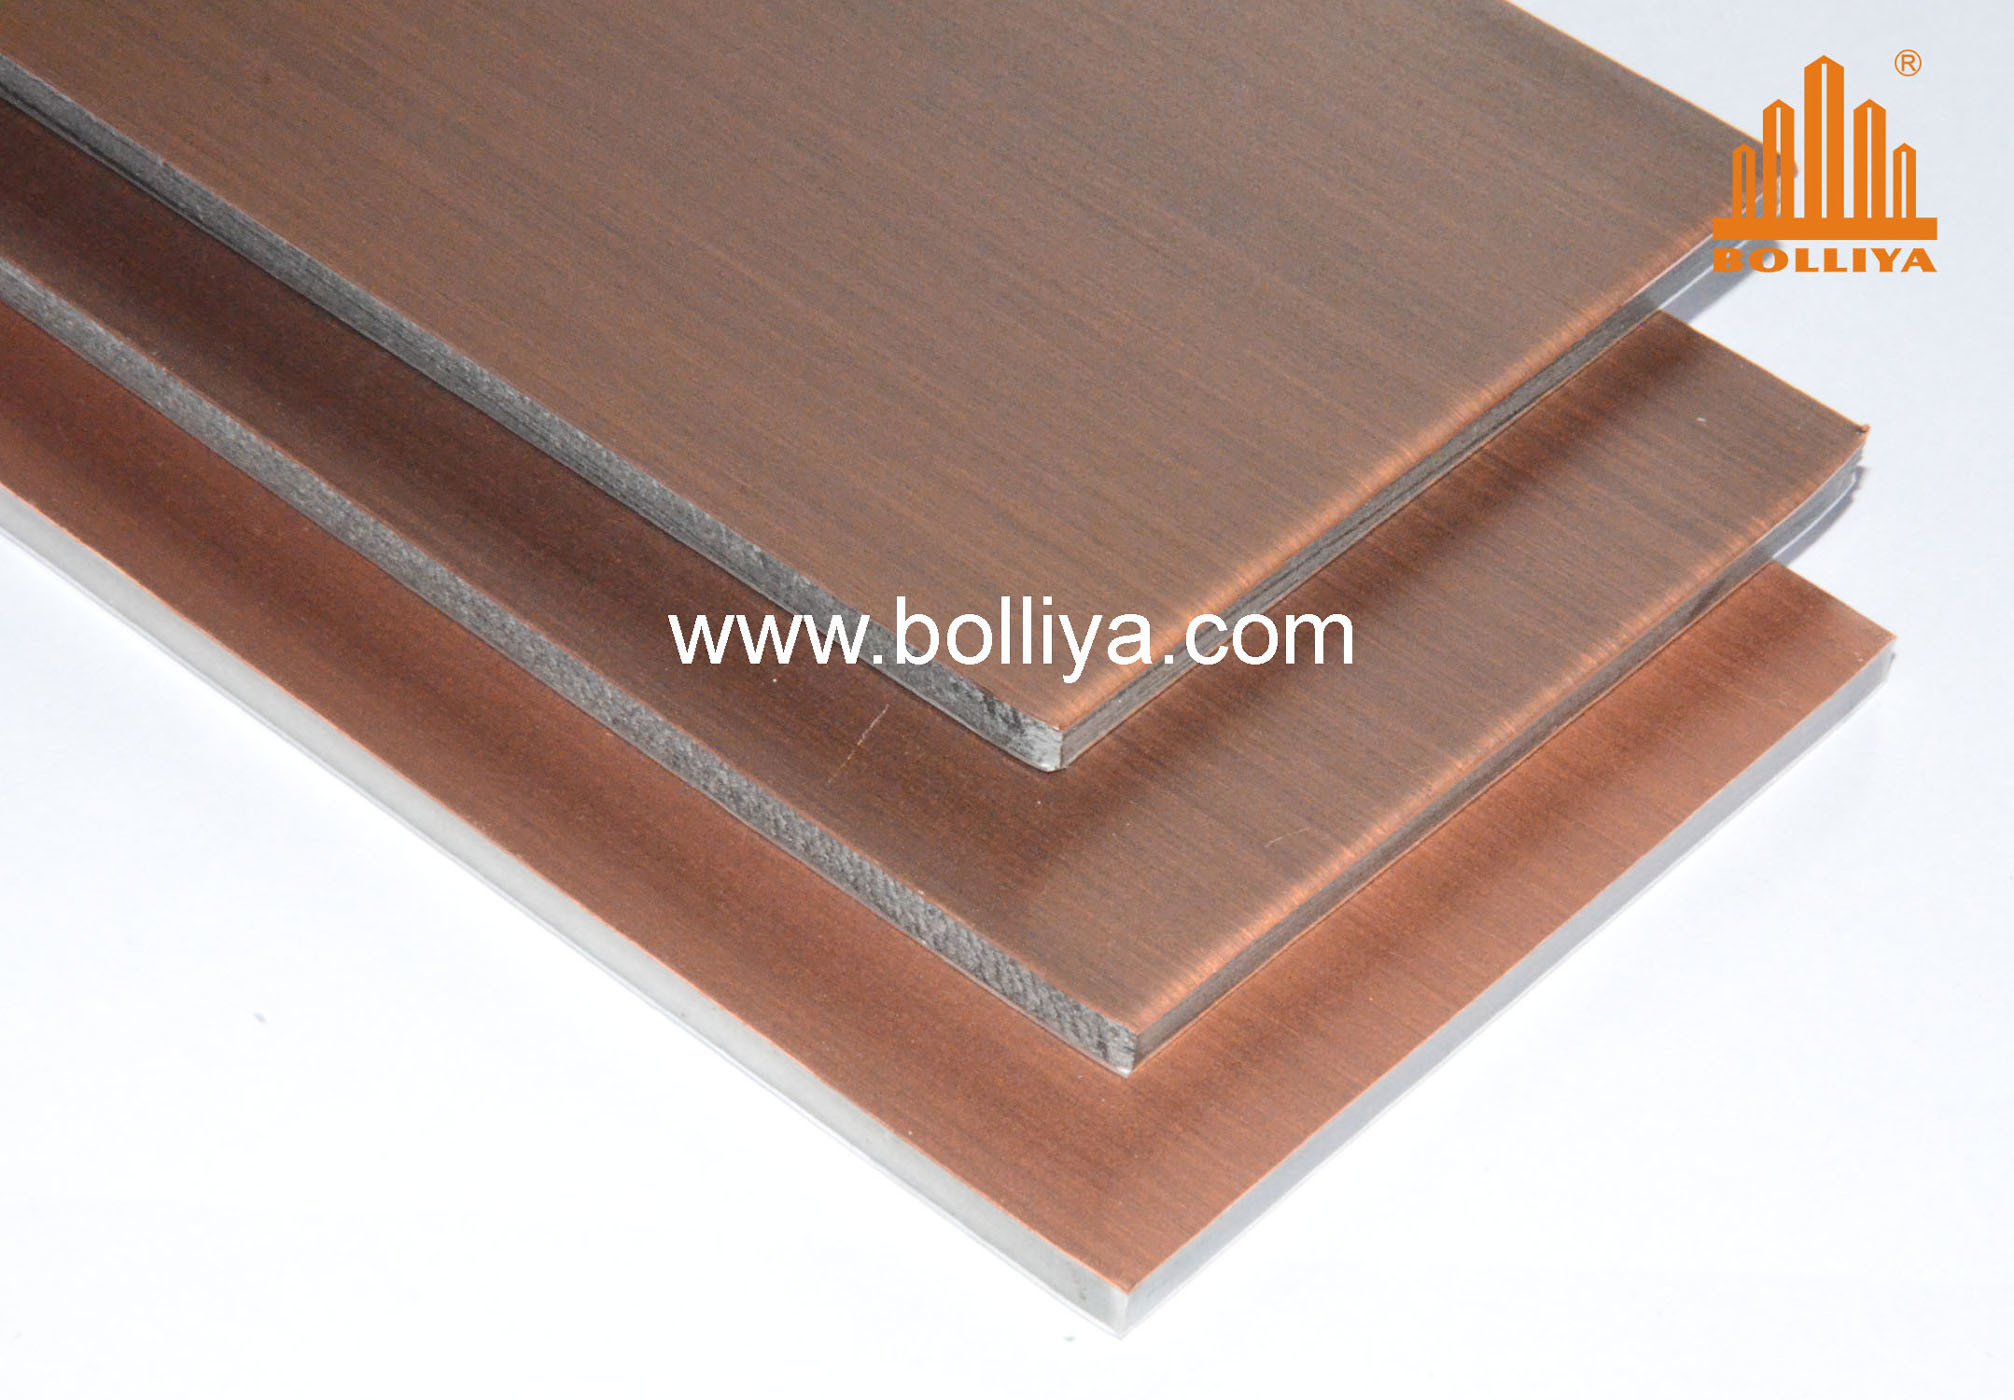 Copper Composite Panels / Copper Sheets / CC-005 Dark Brown Brush